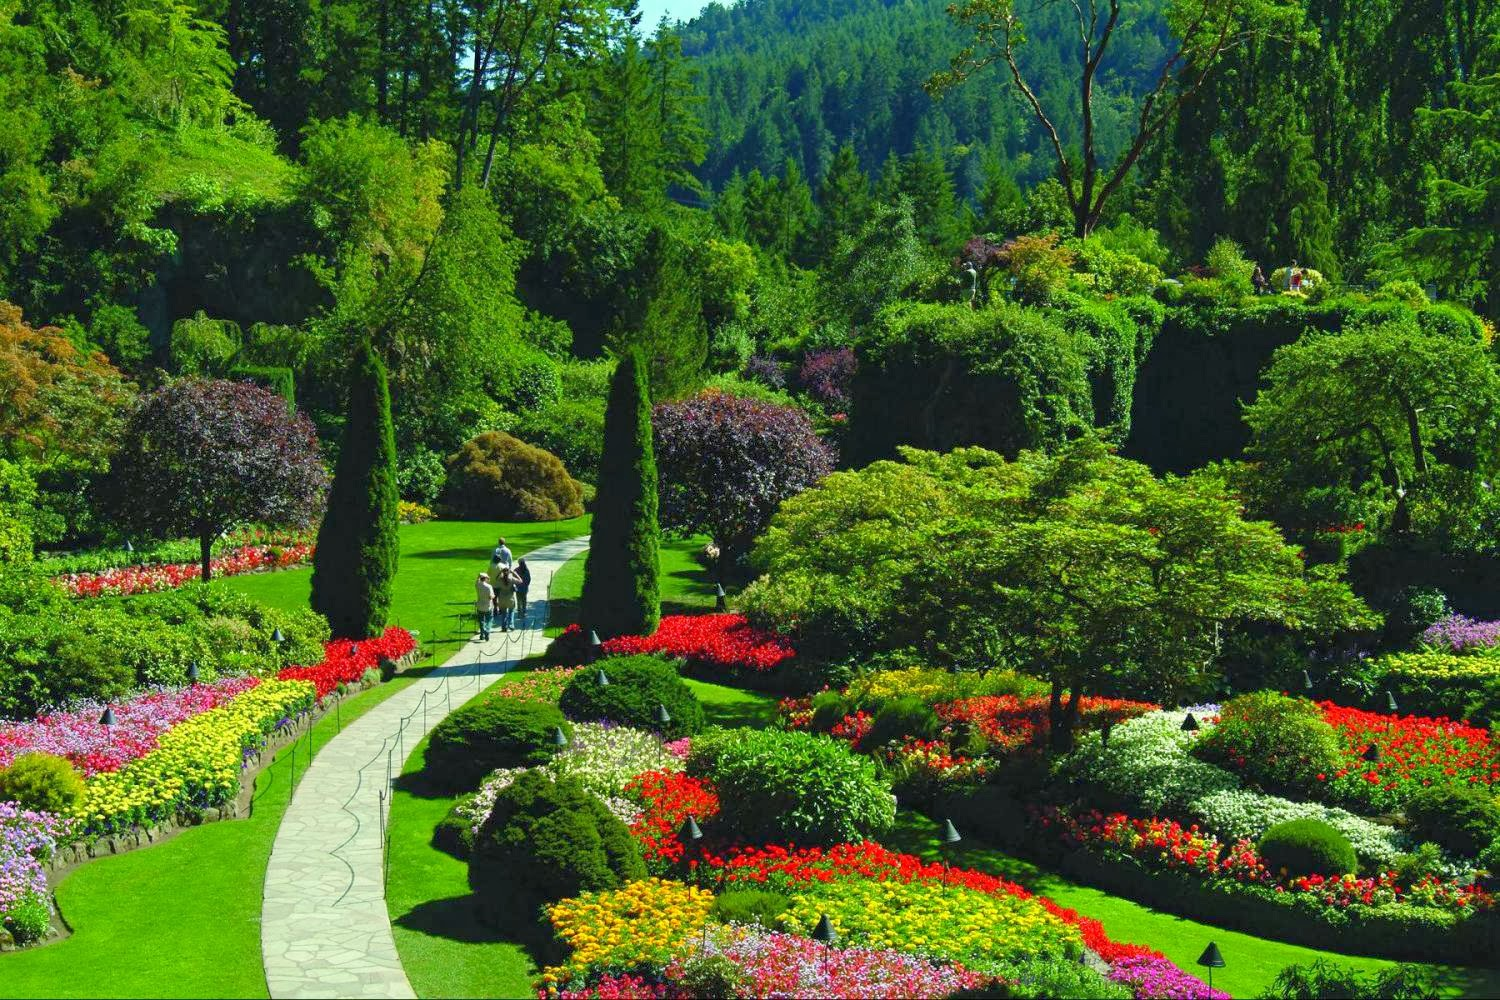 Travel trip journey butchart garden canada - Butchart gardens tour from victoria ...